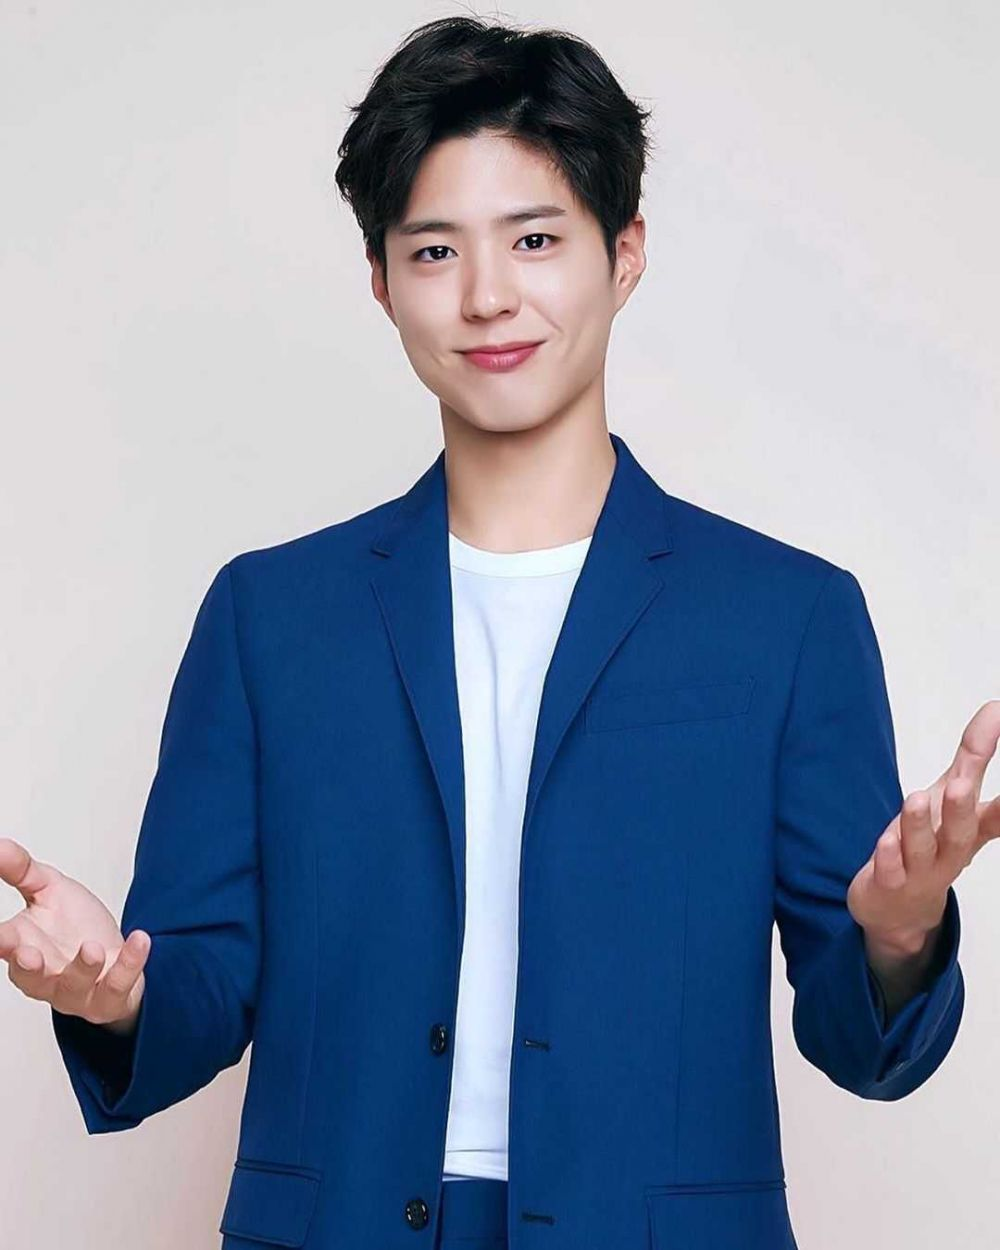 10 Potret Park Bo Gum yang Akan Jadi Model di Drama 'Record of Youth'